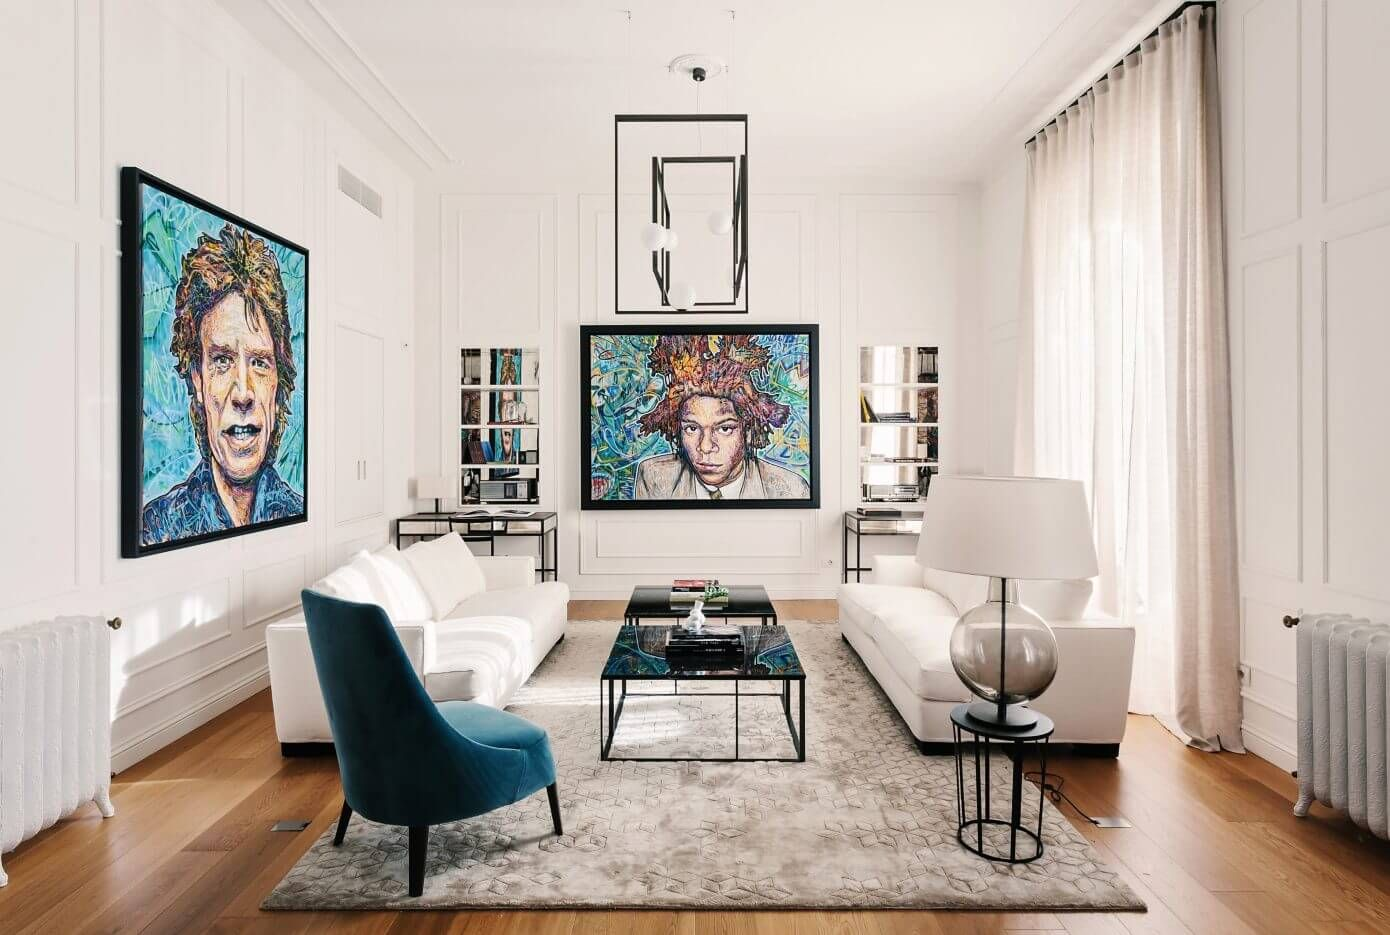 Luxurious apartment located in milan italy designed in 2016 by nomade architettura interior design